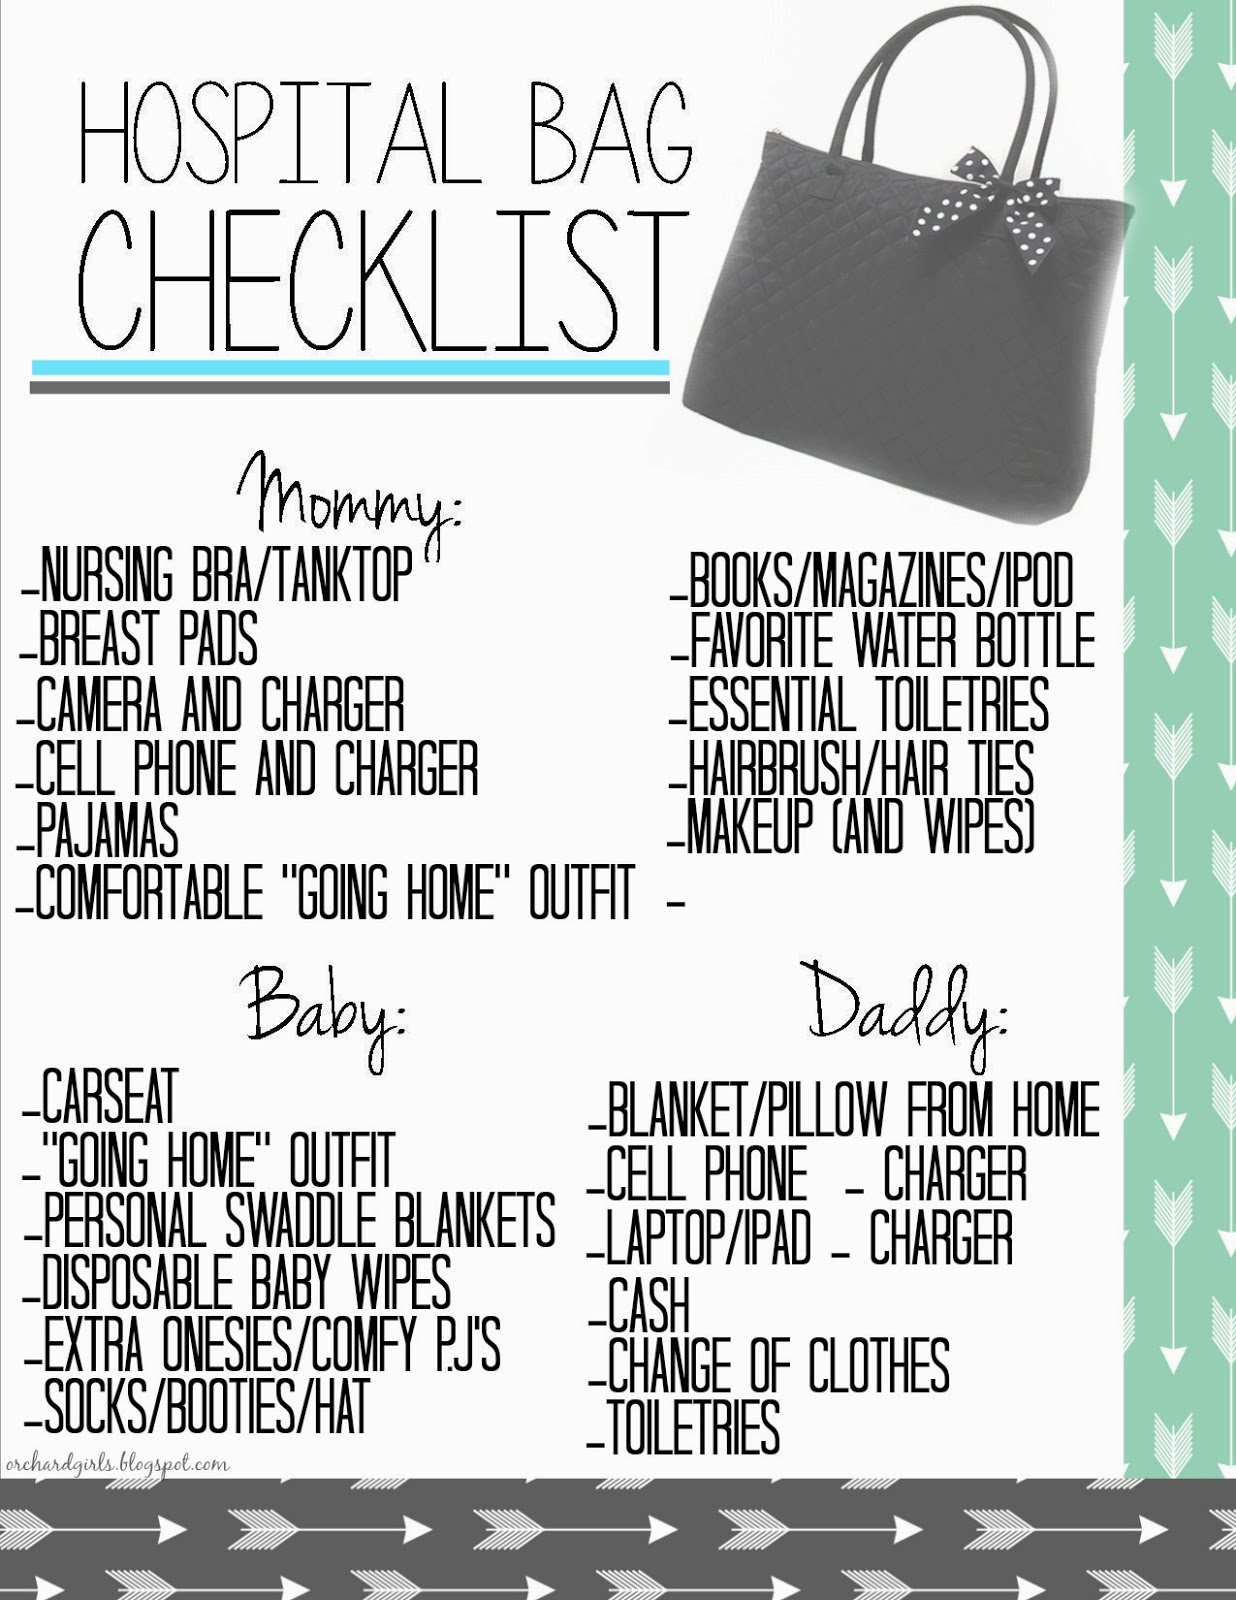 This is an image of Old Fashioned Printable Hospital Bag Checklist